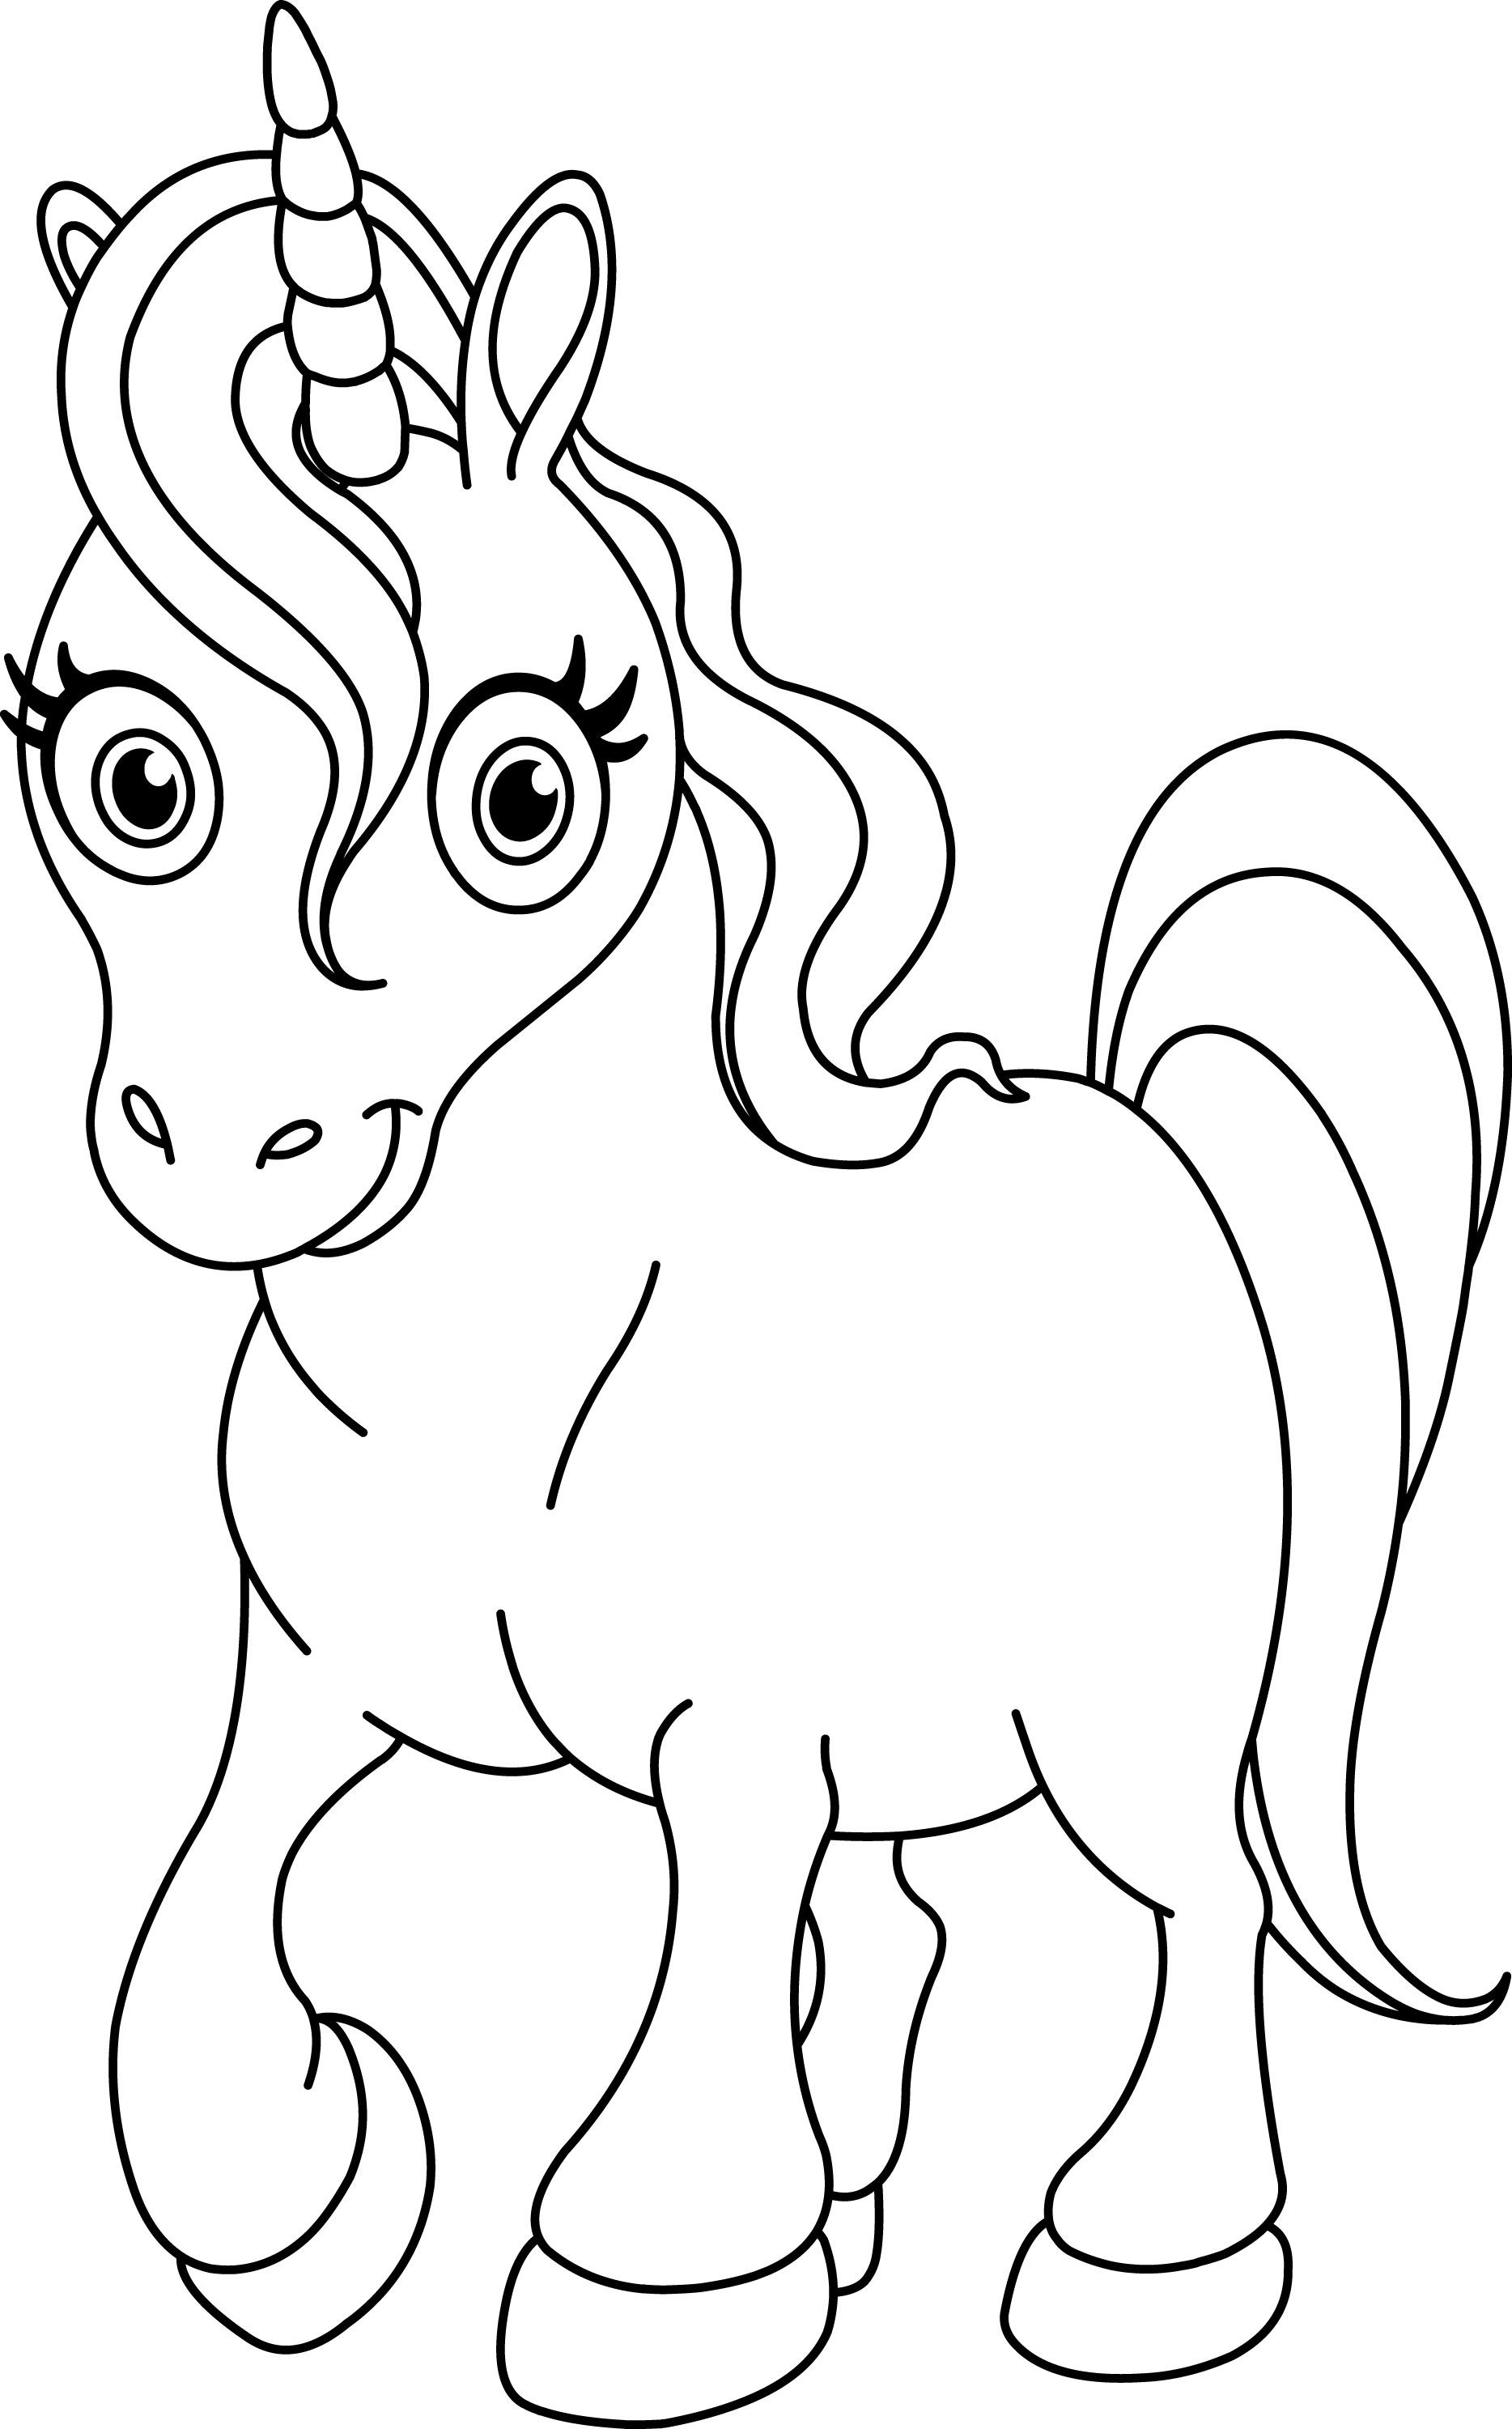 image about Cute Unicorn Coloring Pages Printable called Coloring Internet pages Unicorn All Variations Of Coloring Rainbow